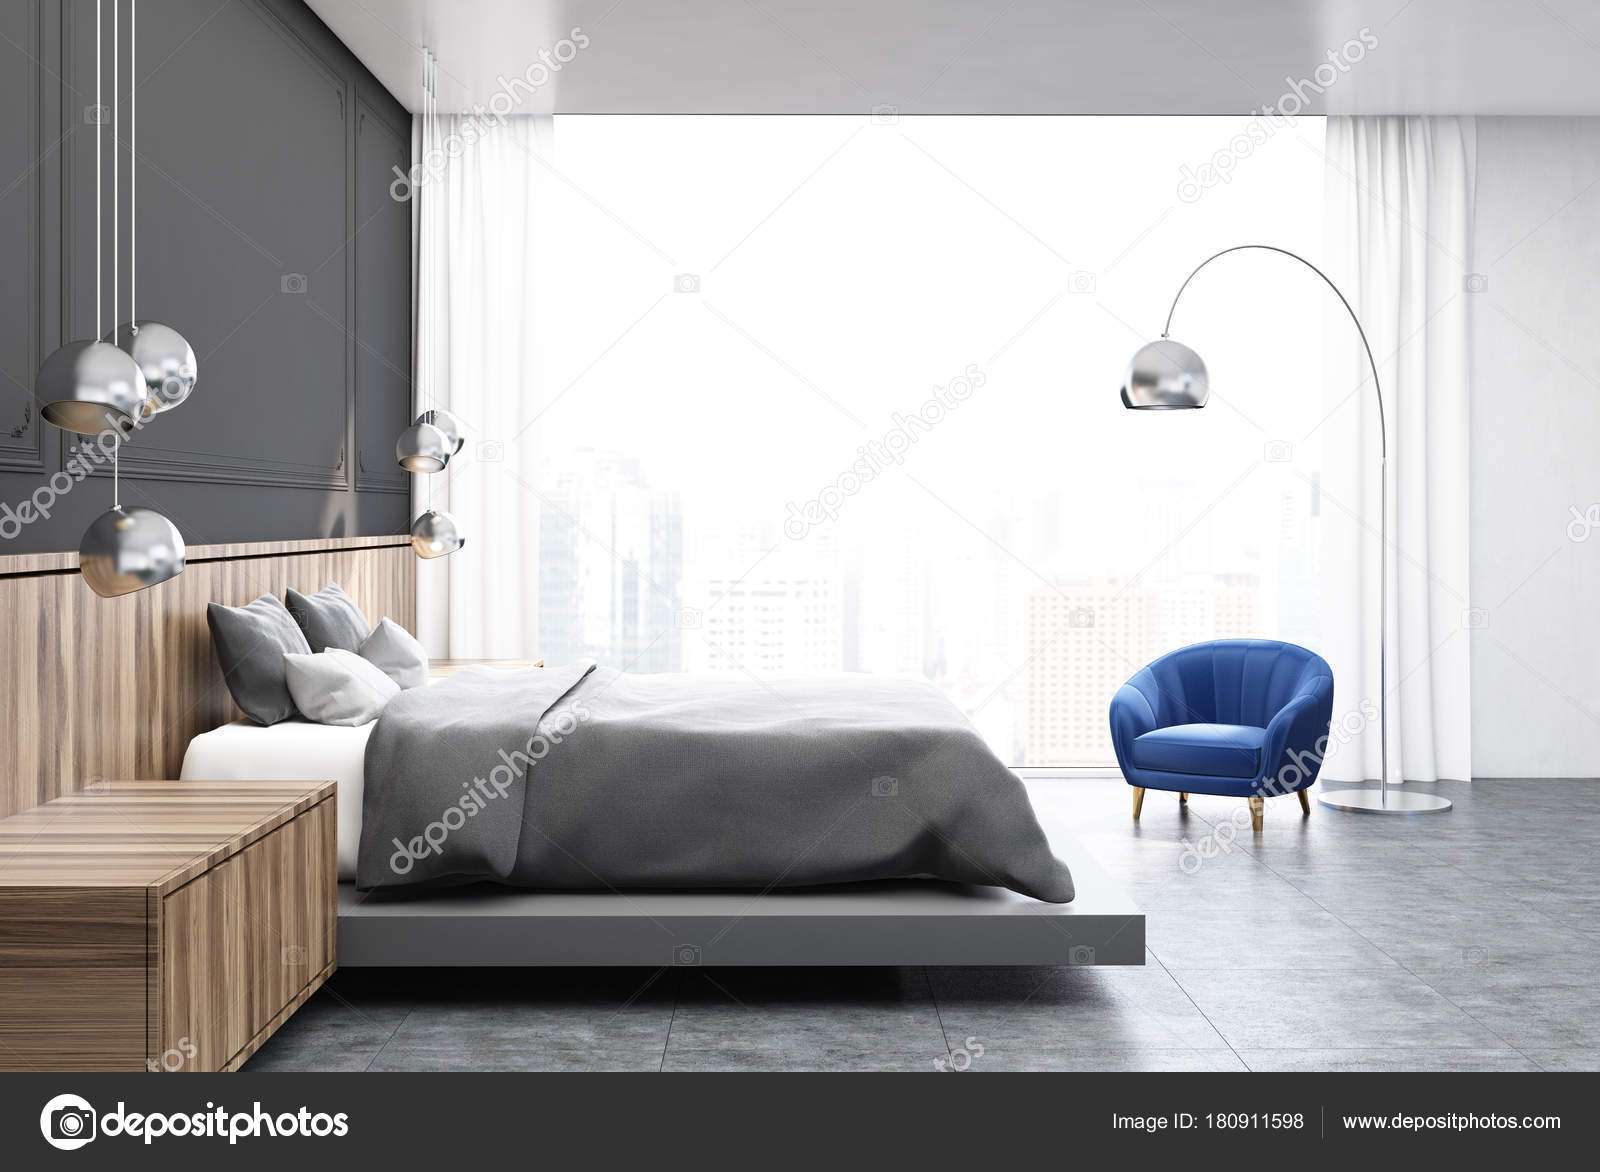 grau und holz schlafzimmer graue bett seite stockfoto denisismagilov 180911598. Black Bedroom Furniture Sets. Home Design Ideas